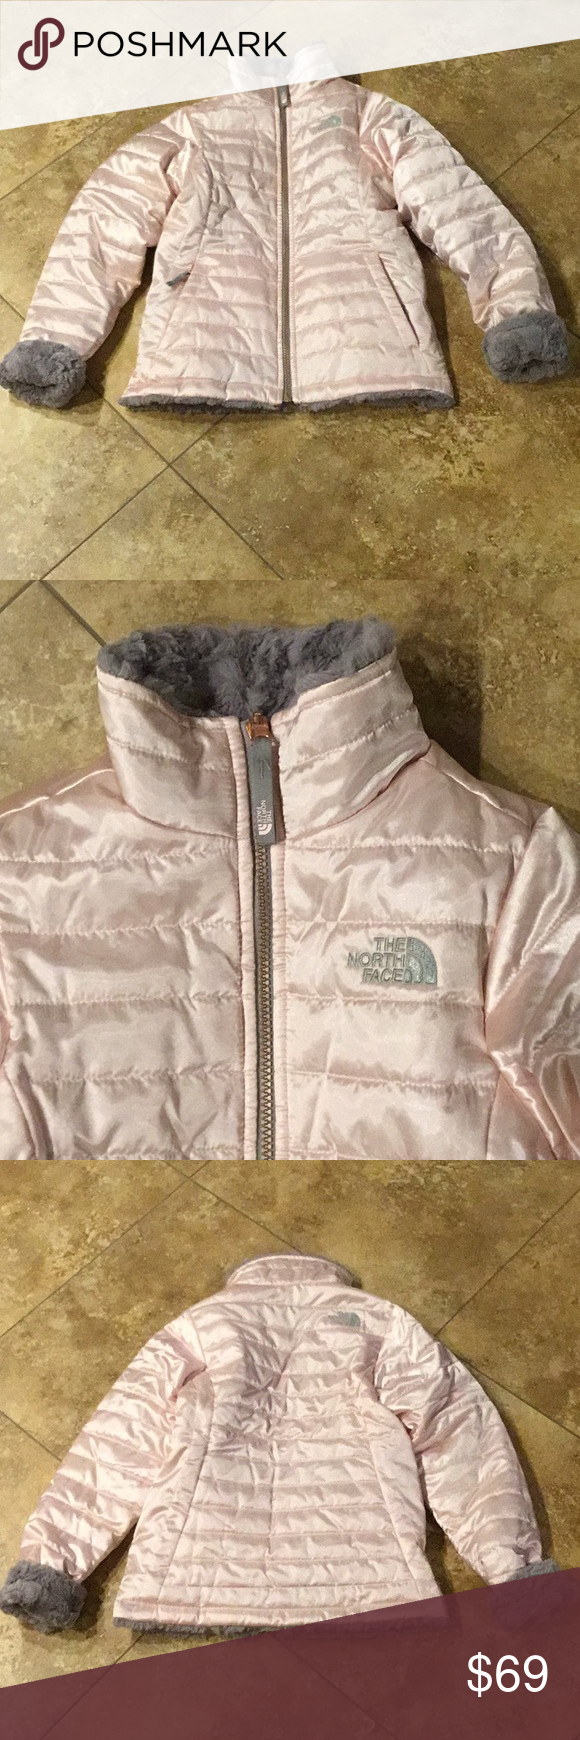 North Face Girls Pink Winter Jacket With Faux Fur North Face Girls Winter Jackets Justice Girls Clothes [ 1740 x 580 Pixel ]